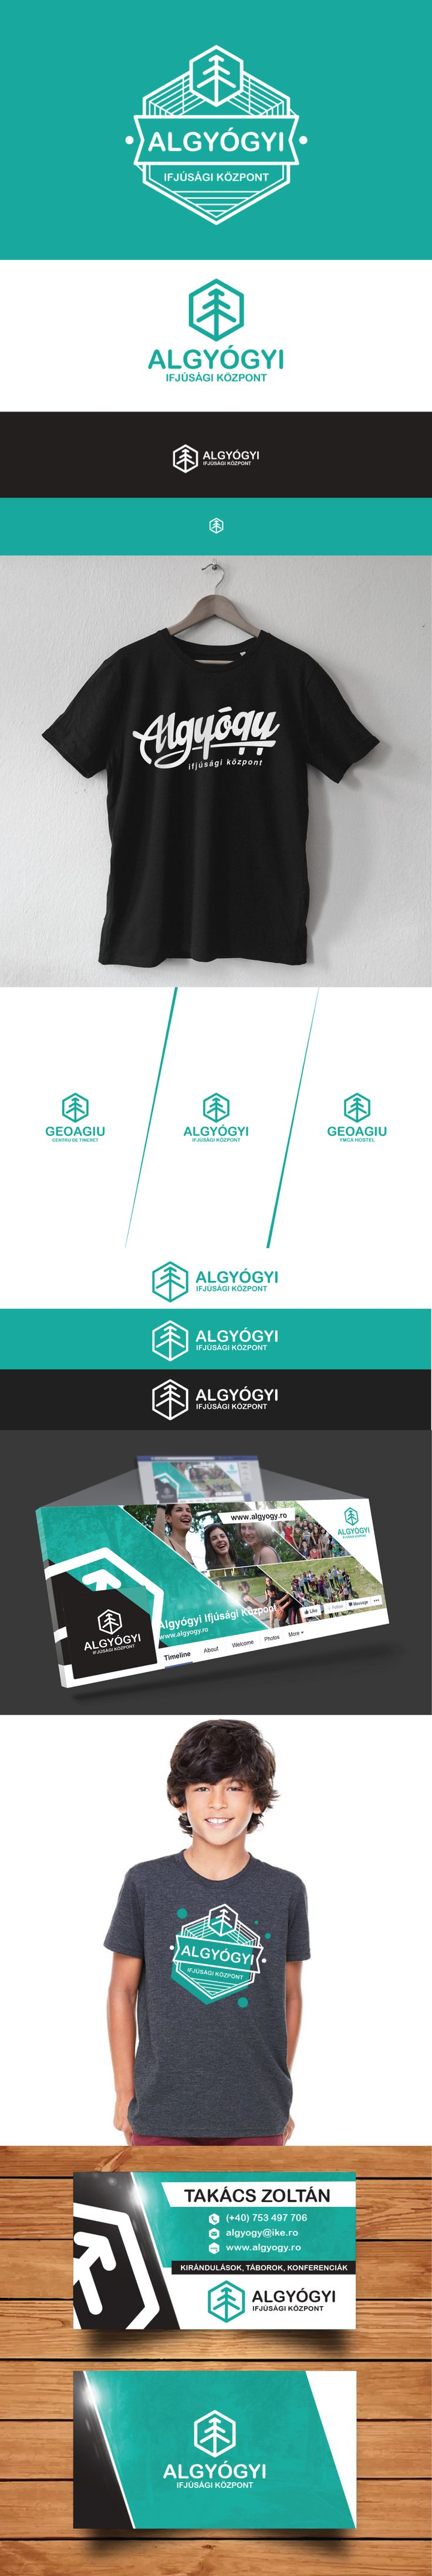 Logo design for a youth center #design #logo #youth #center